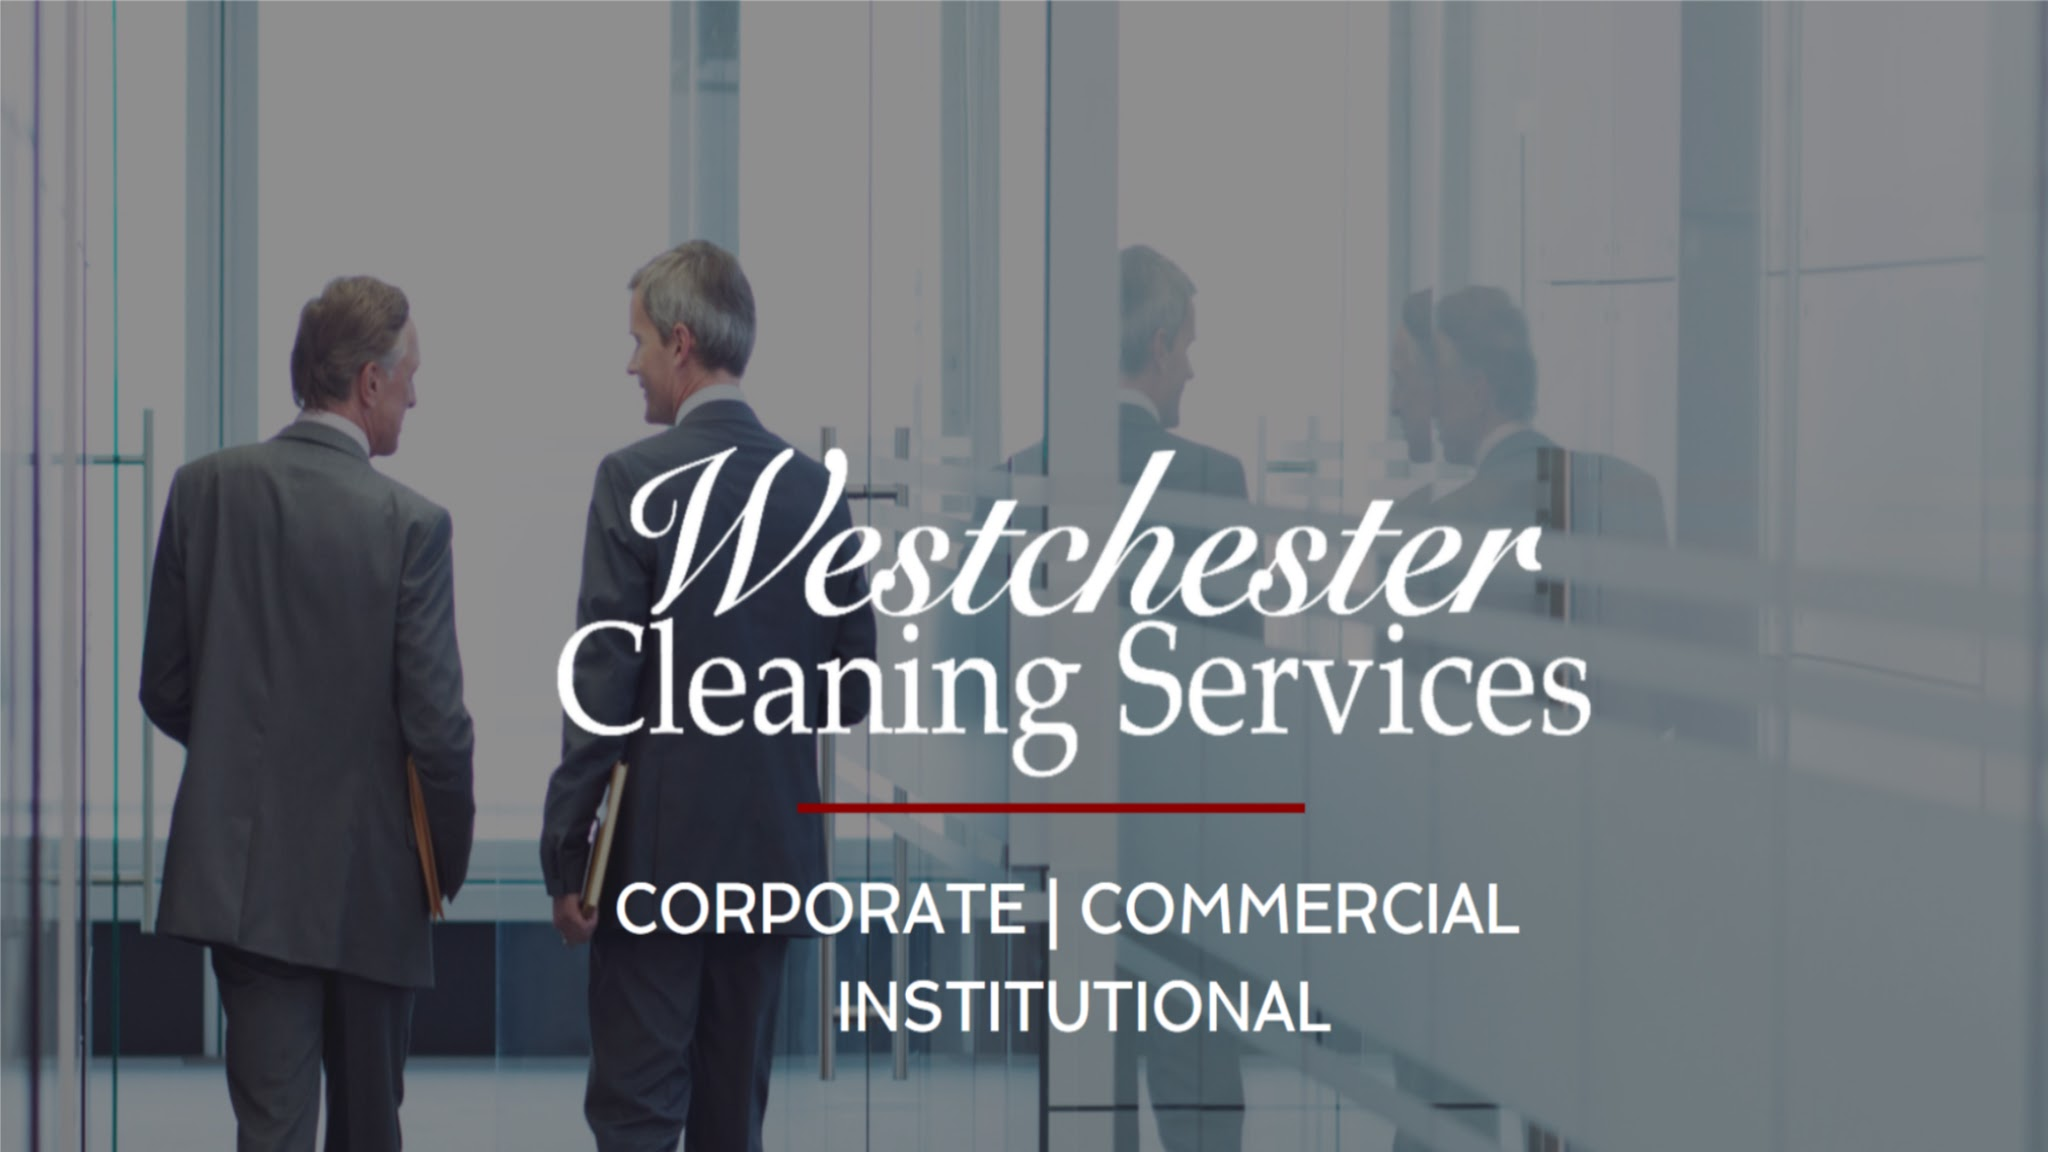 Westchester Cleaning Services